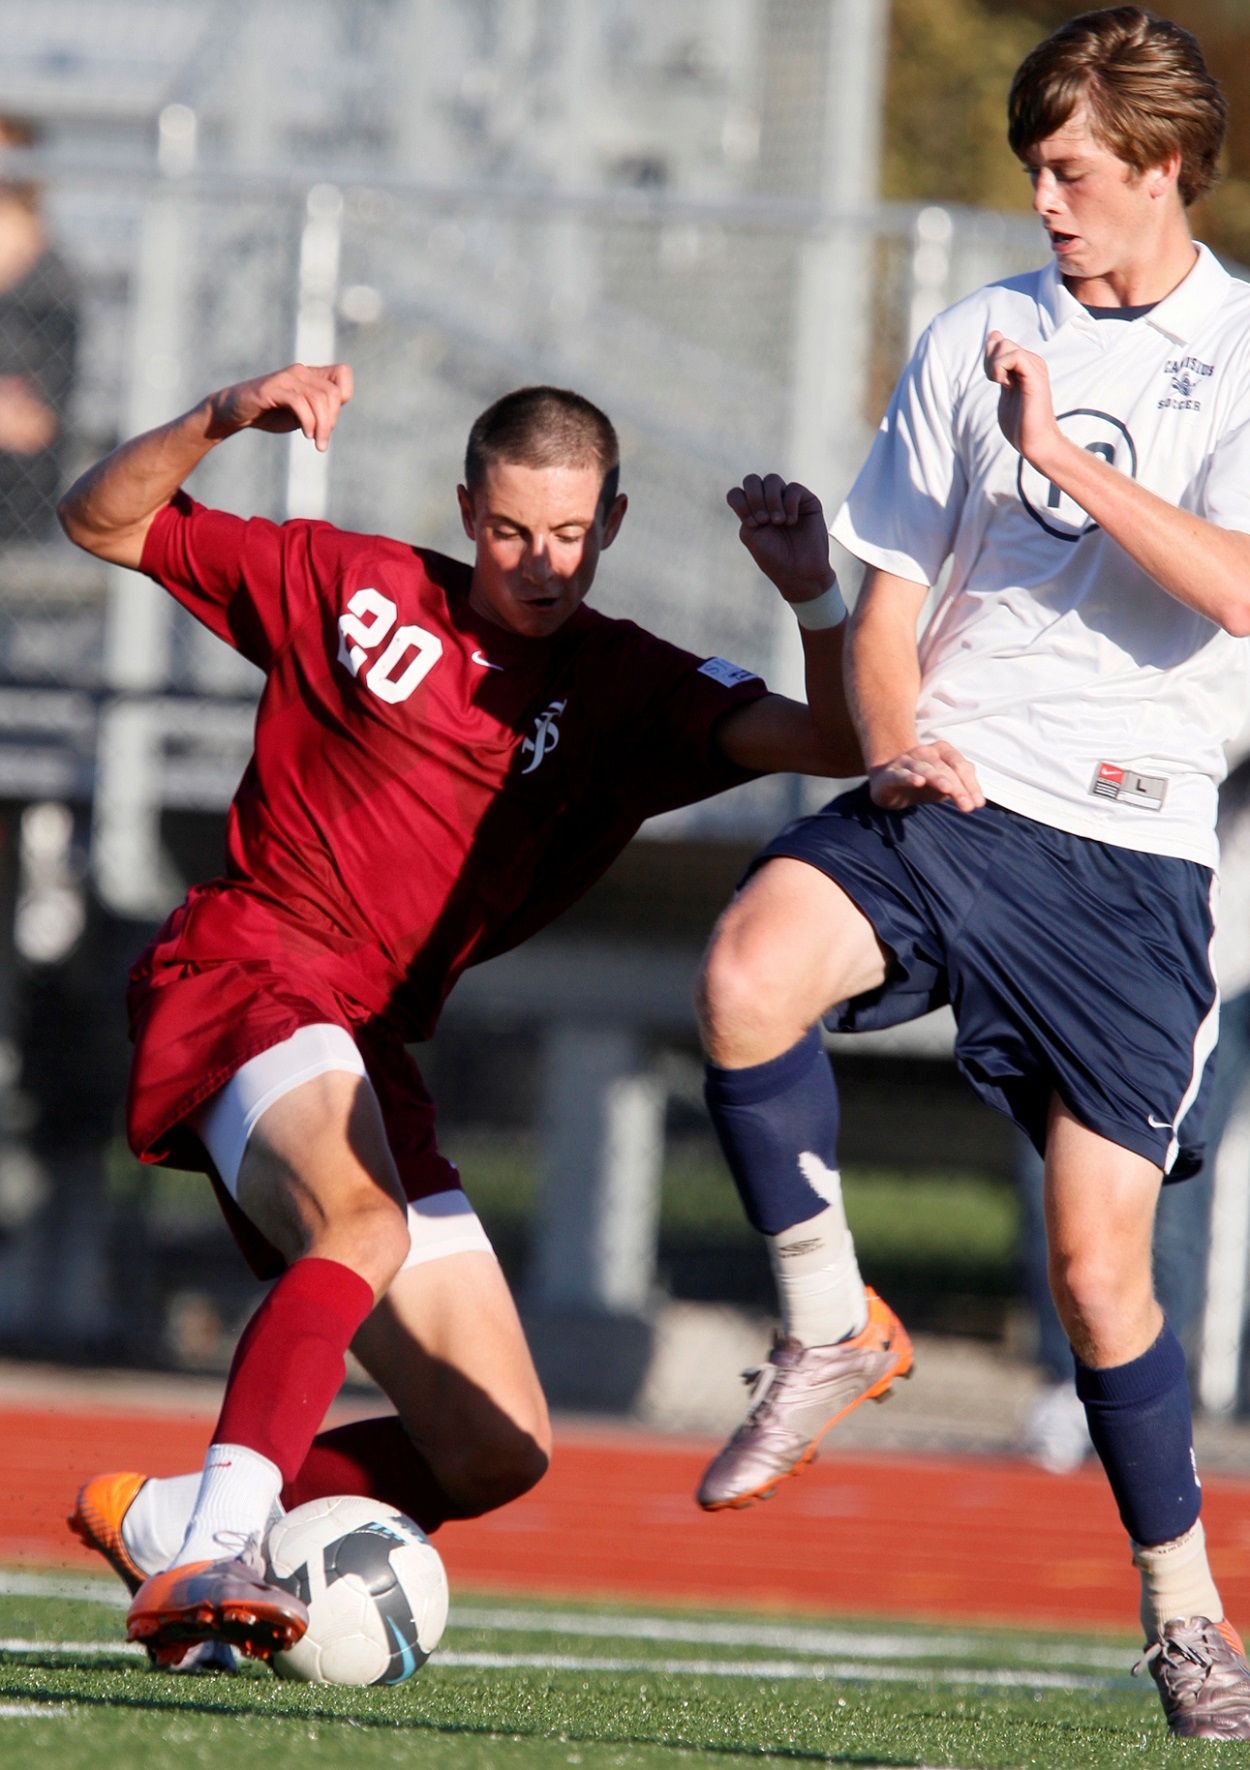 In a 2010 rivalry match between St. Joe's and Canisius, the Marauders' Braden Scales, left, goes into a tackle with the Crusaders' Mitch Cancilla. Both players continued to play at the collegiate level. (John Hickey/Buffalo News file photo)